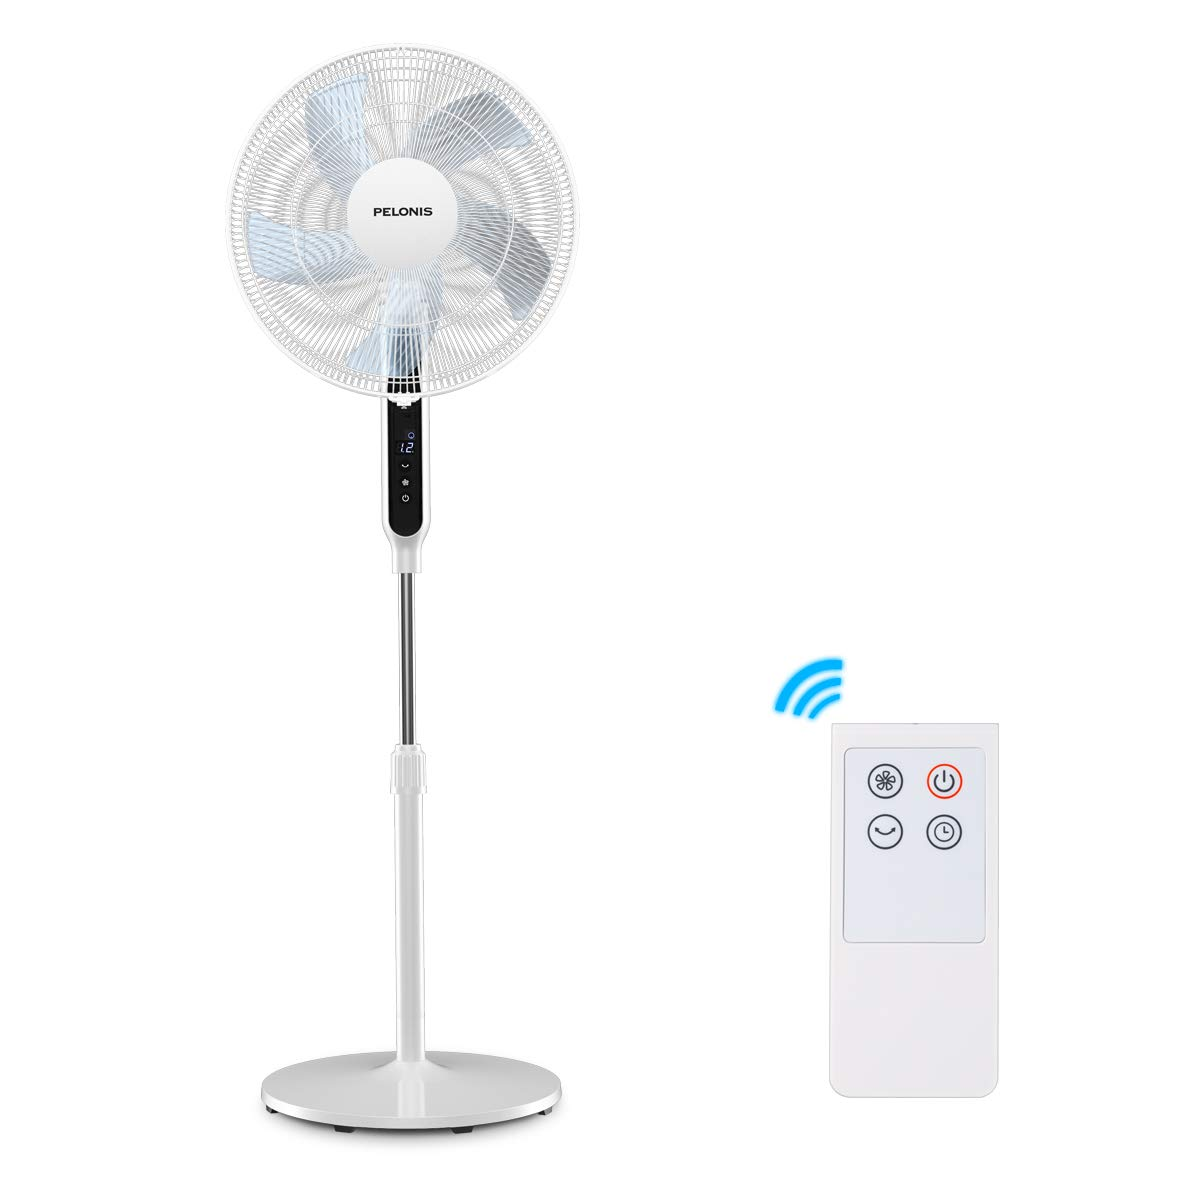 PELONIS DC Motor Ultra Quiet Pedestal Sleeping &Baby, High Energy Efficiency Standing Fan Speed, 12-Hour Timer, Remote Control, and Adjustable Heights, FS40-19PRD, White, 16 Inch, Black&White